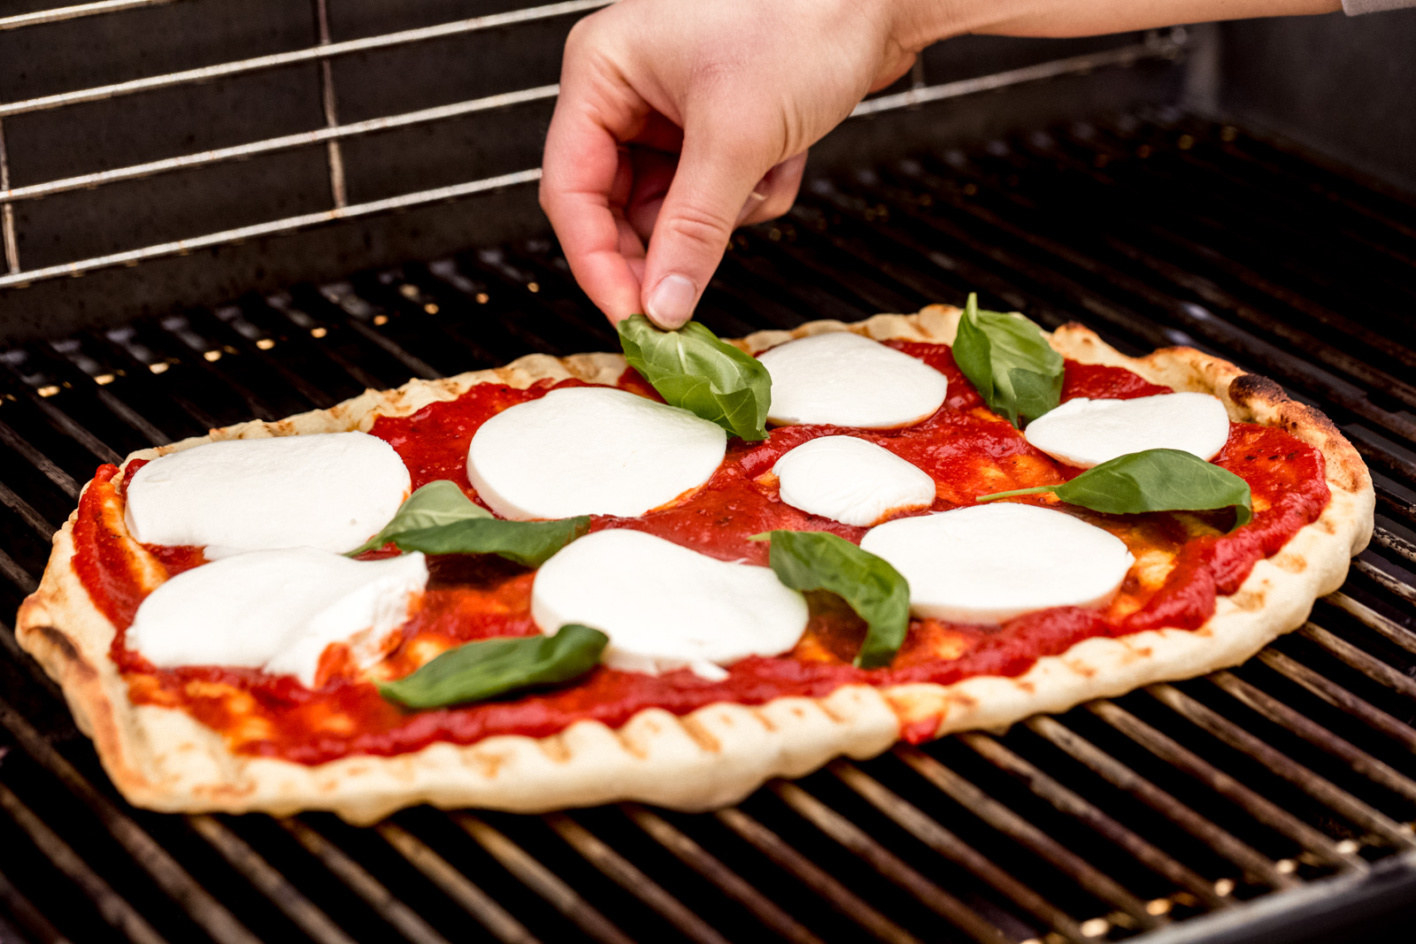 A margarita pizza topped with tomato sauce, mozzarella, and fresh basil on a grill.